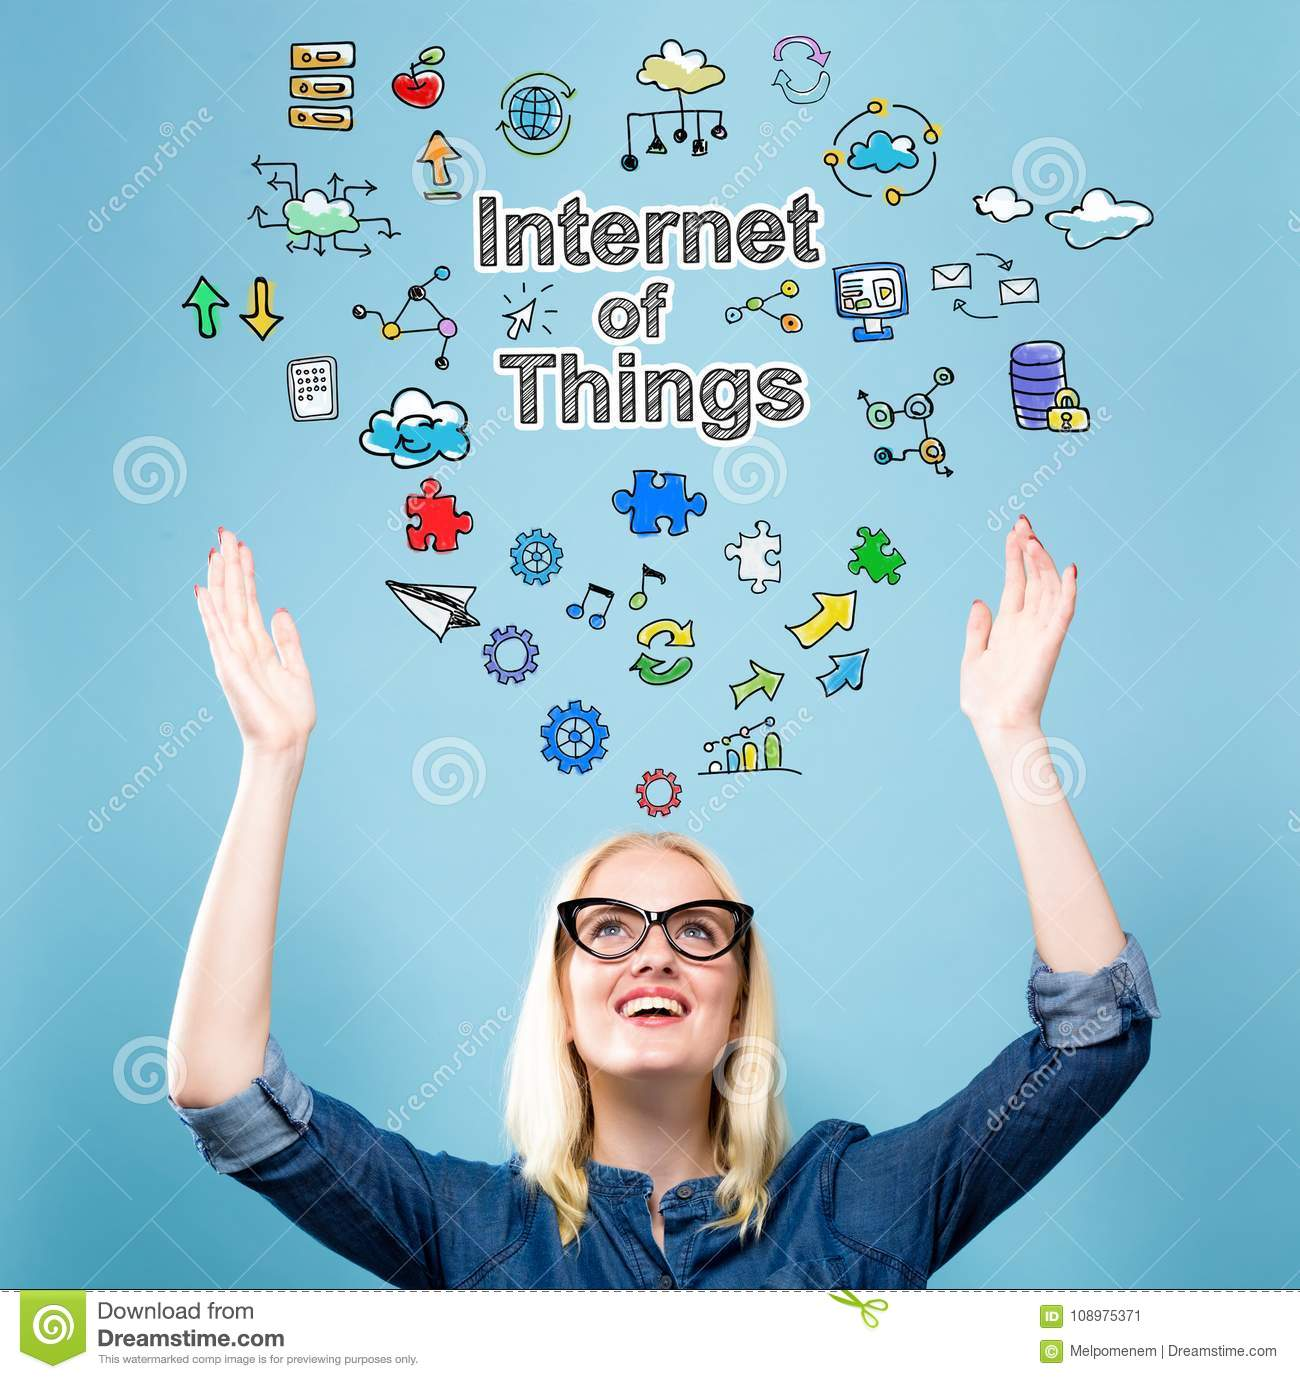 Internet of Things with young woman